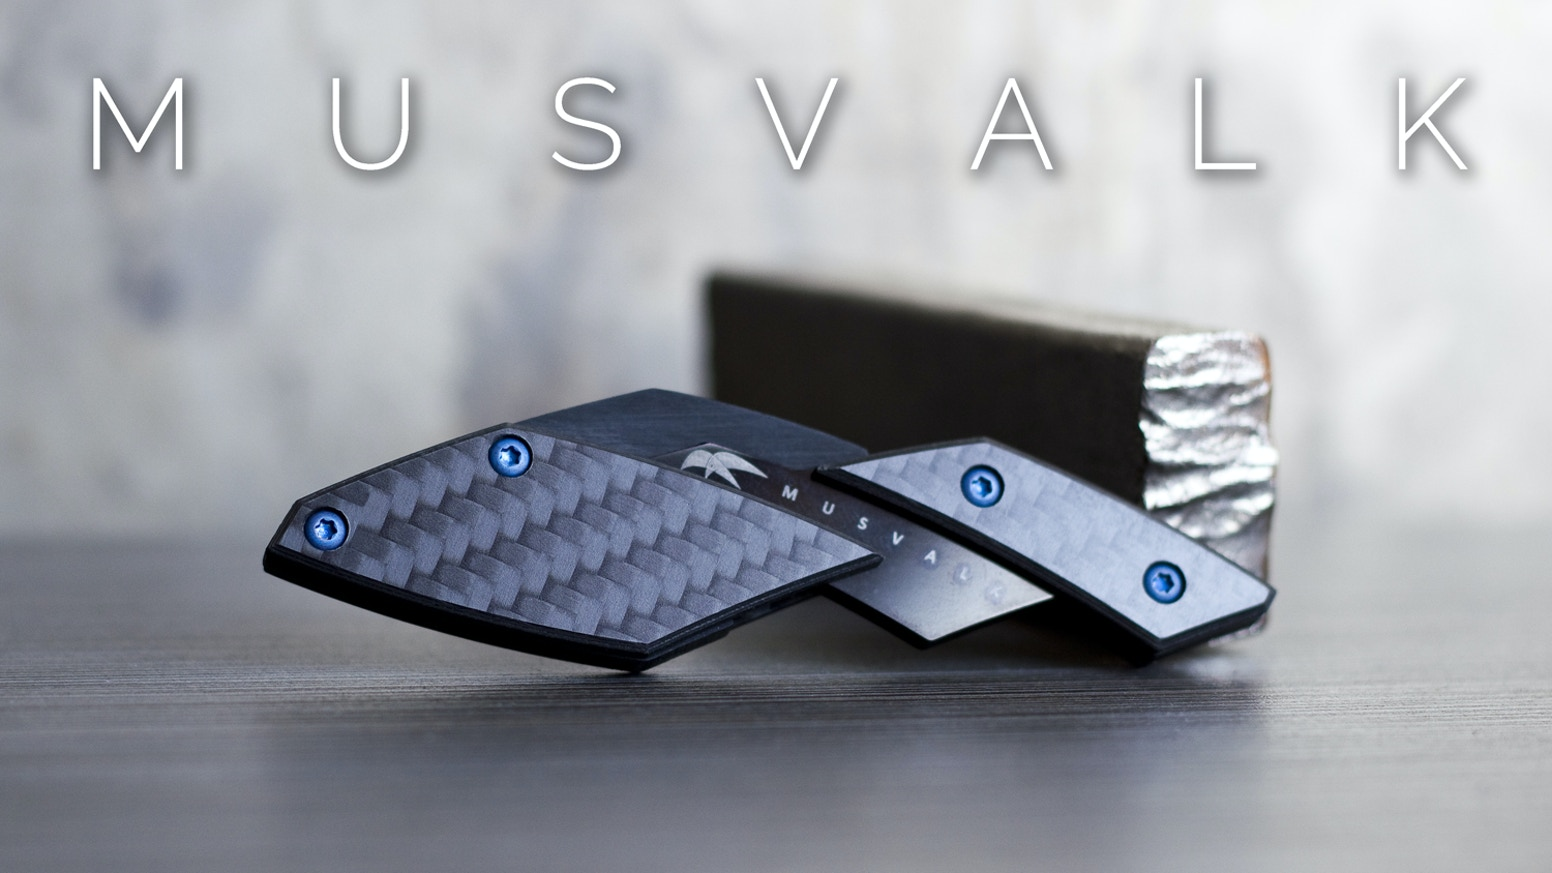 A little knife made from materials found in spacecrafts: advanced ceramics, titanium and carbon fiber.